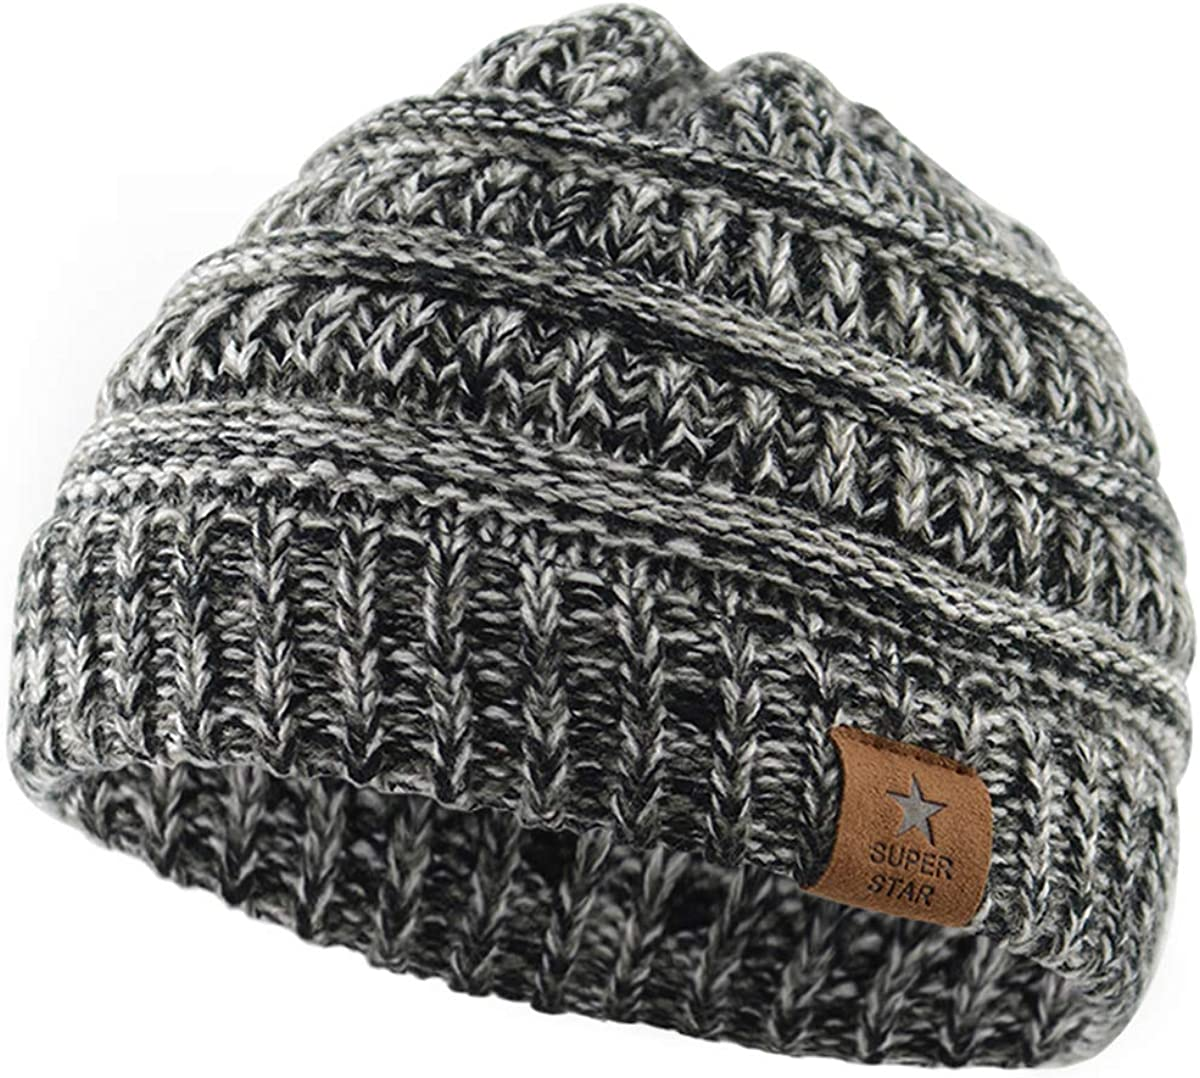 Zando Baby Beanies Infant Toddler Winter Hat Soft Warm Knit Hats Caps for Boys